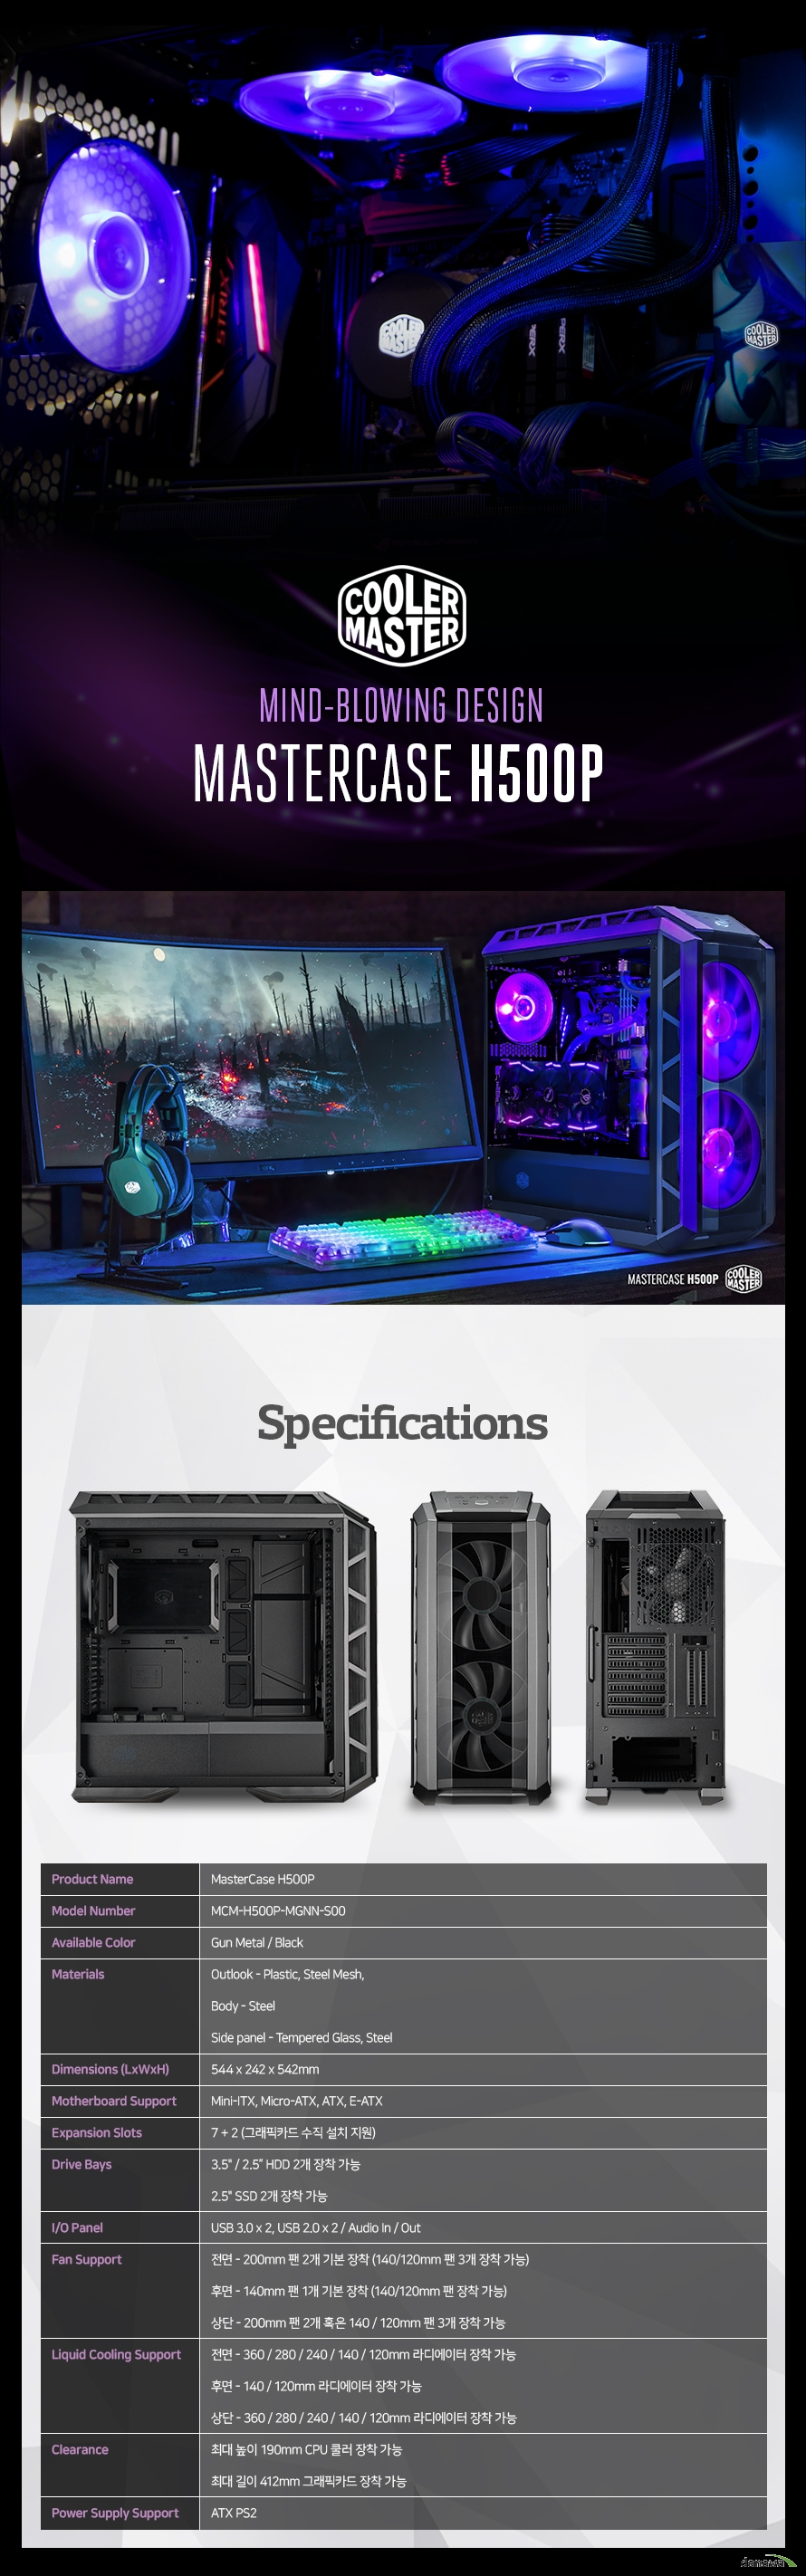 "Product Name	MasterCase H500PModel Number	MCM-H500P-MGNN-S00Available Color	Gun Metal / BlackMaterials	Outlook - Plastic, Steel Mesh, 	Body - Steel	Side panel - Dimensions (LxWxH)	544 x 242 x 542mmMotherboard Support	Mini-ITX, Micro-ATX, ATX, E-ATXExpansion Slots	7 + 2 (그래픽카드 수직 설치 지원)Drive Bays	5.25"" 1개 설치 가능 (ODD 설치 시 전면 200mm 팬 설치 불가능)	3.5인치 / 2.5인치 HDD 2개 장착 가능	2.5인치 SSD 2개 장착 가능I/O Panel	USB 3.0 x 2, USB 2.0 x 2 / Audio In / OutFan Support	전면 - 200mm 팬 2개 기본 장착 (140/120mm 팬 3개 장착 가능)	후면 - 140mm 팬 1개 기본 장착 (140/120mm 팬 장착 가능)	상단 - 200mm 팬 2개 혹은 140 / 120mm 팬 3개 장착 가능 Liquid Cooling Support	전면 - 360 / 280 / 240 / 140 / 120mm 라디에이터 장착 가능	후면 - 140 / 120mm 라디에이터 장착 가능	상단 - 360 / 280 / 240 / 140 / 120mm 라디에이터 장착 가능Clearance	최대 높이 190mm CPU 쿨러 장착 가능	최대 길이 412mm 그래픽카드 장착 가능Power Supply Support	ATX PS2"